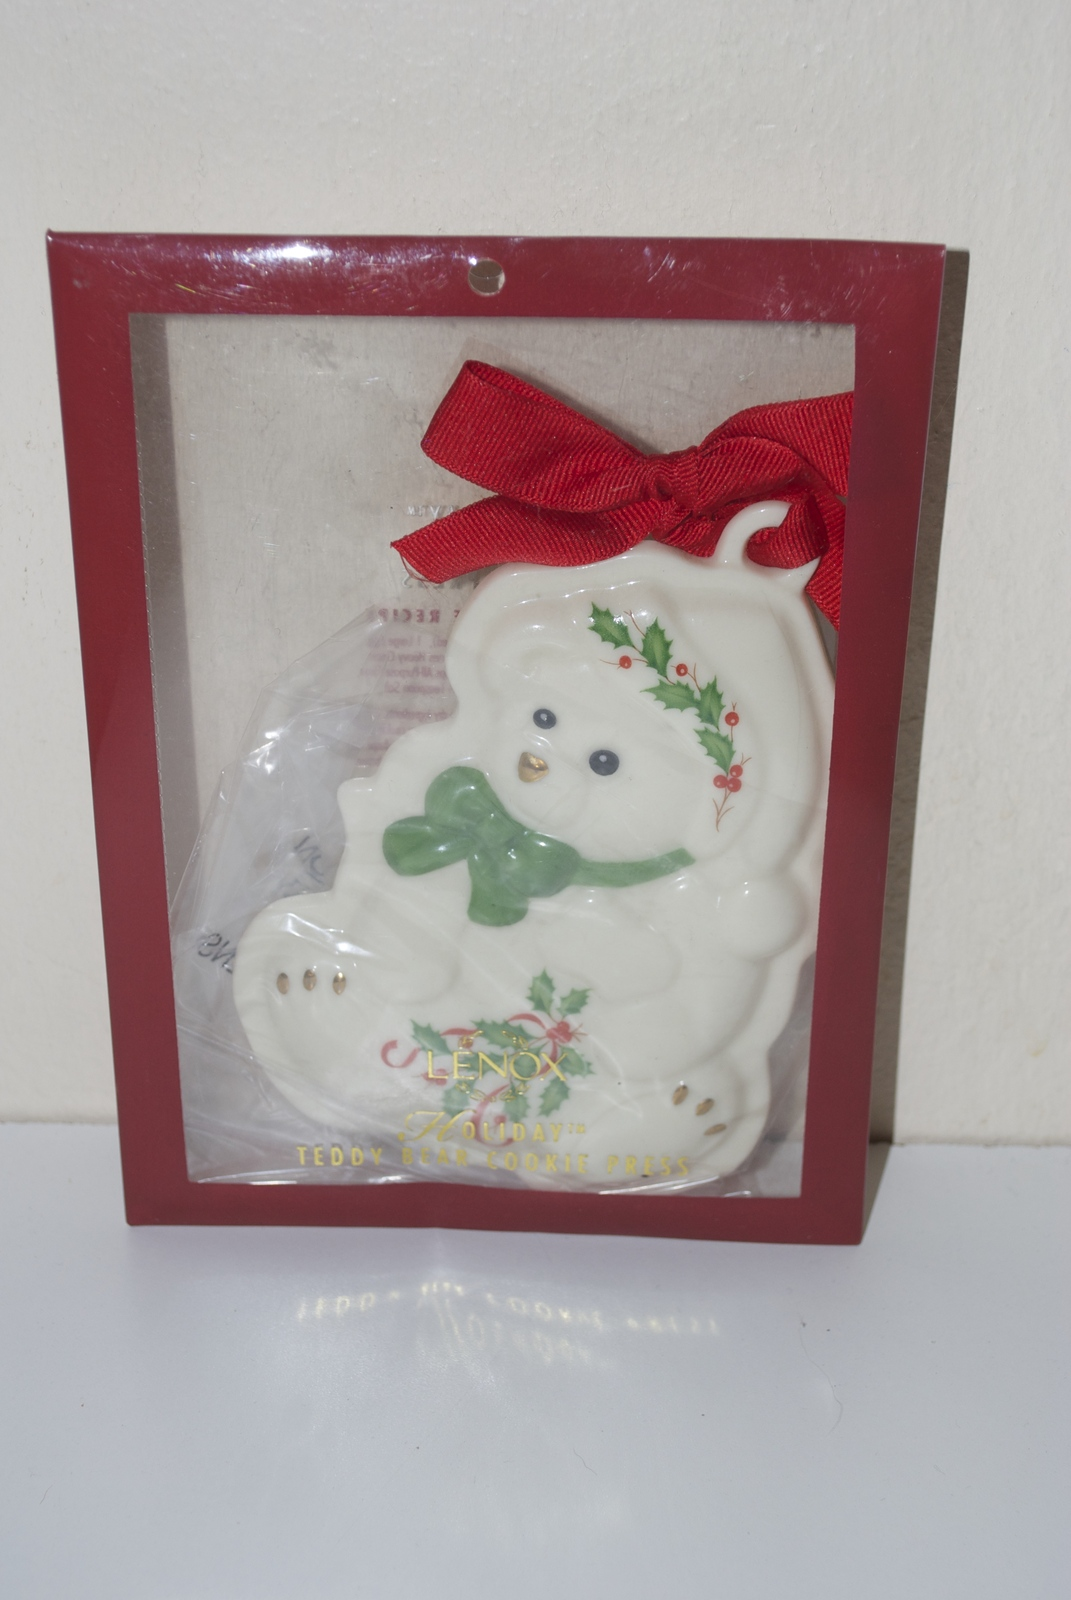 Lenox Holiday Teddy Bear Cookie Press Christmas Ornament